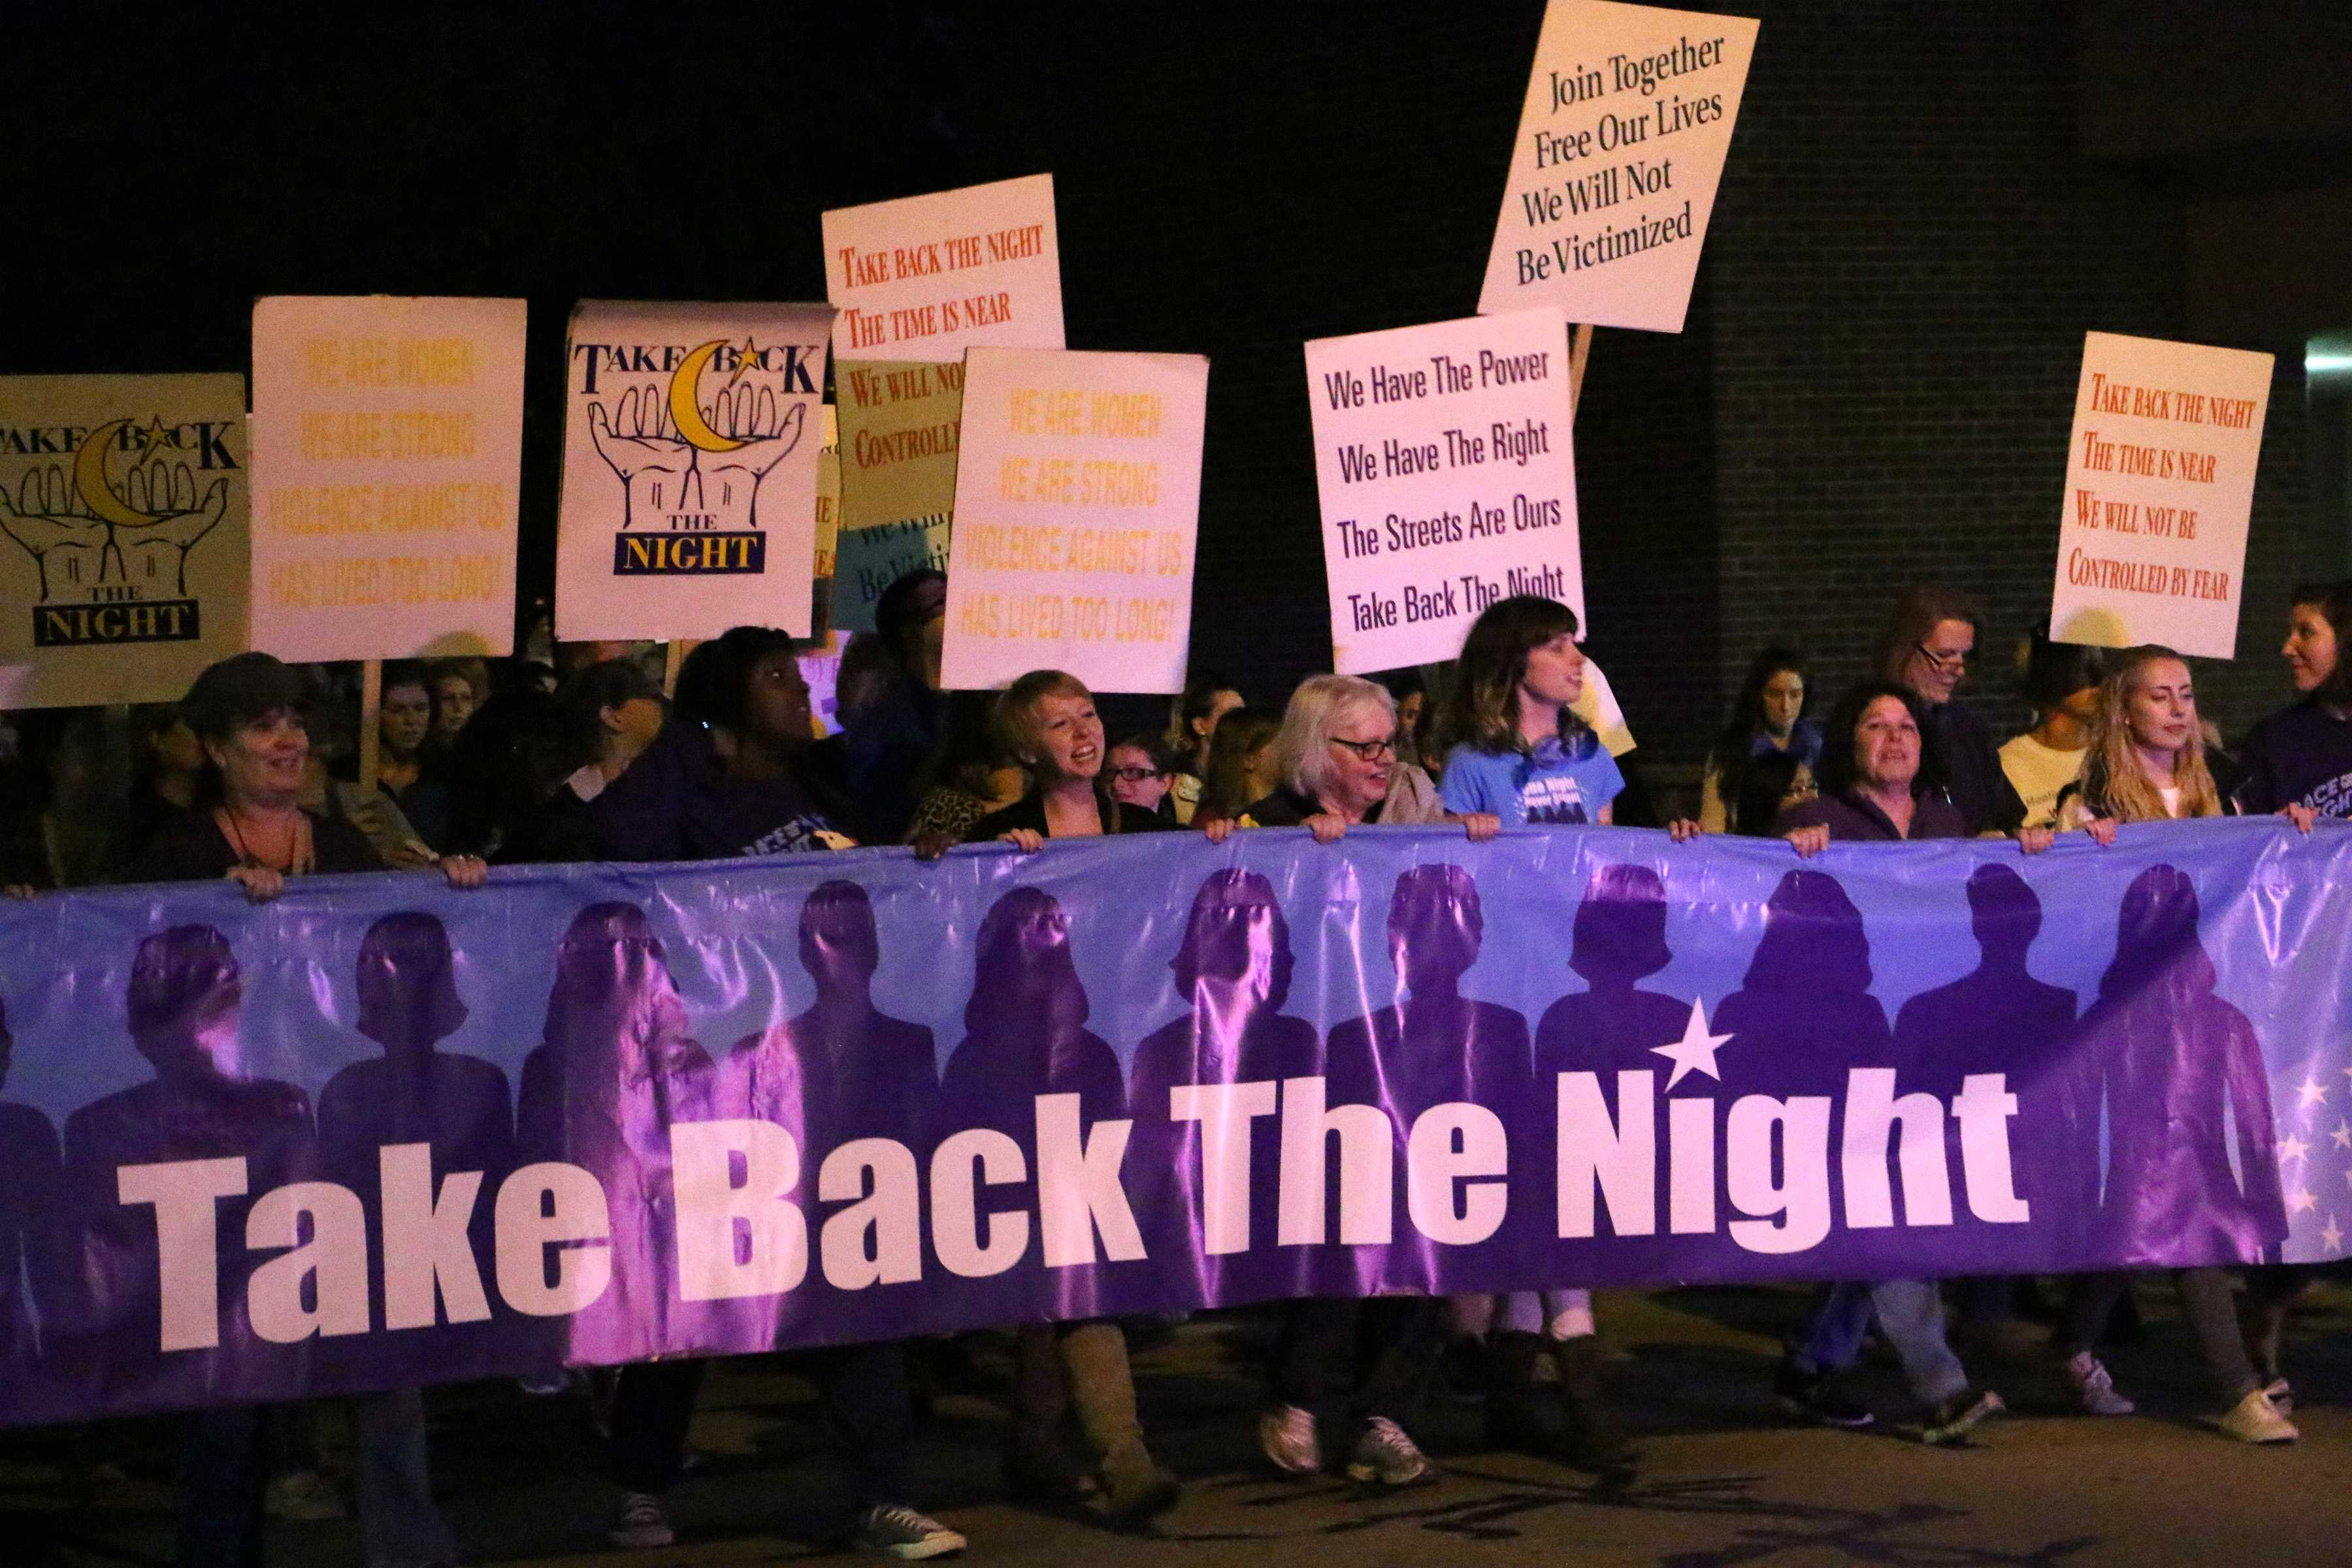 People march and chant through the streets of Oshkosh for domestic violence victims.